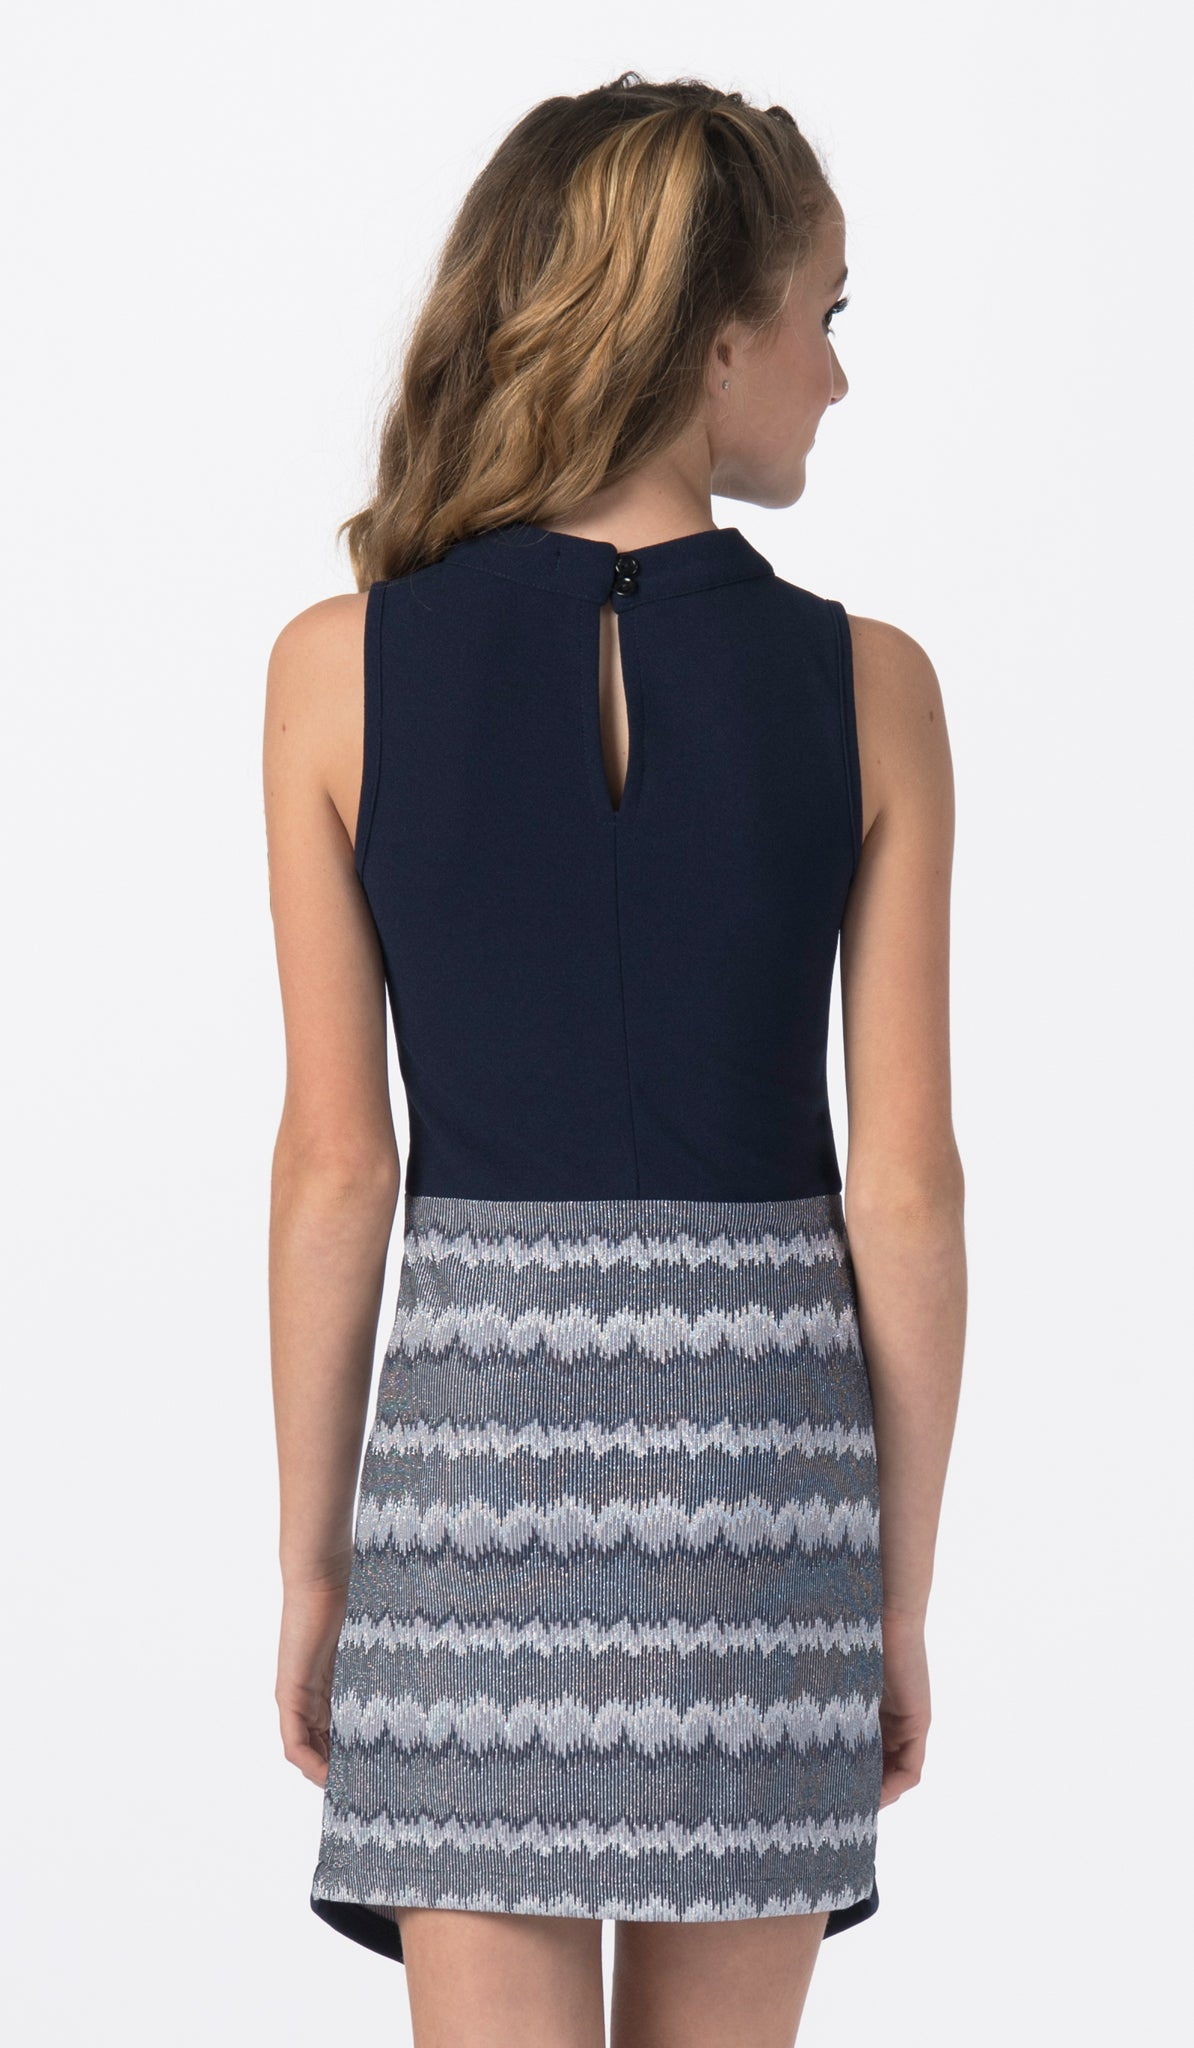 Navy and jacquard dress for special occasion back view